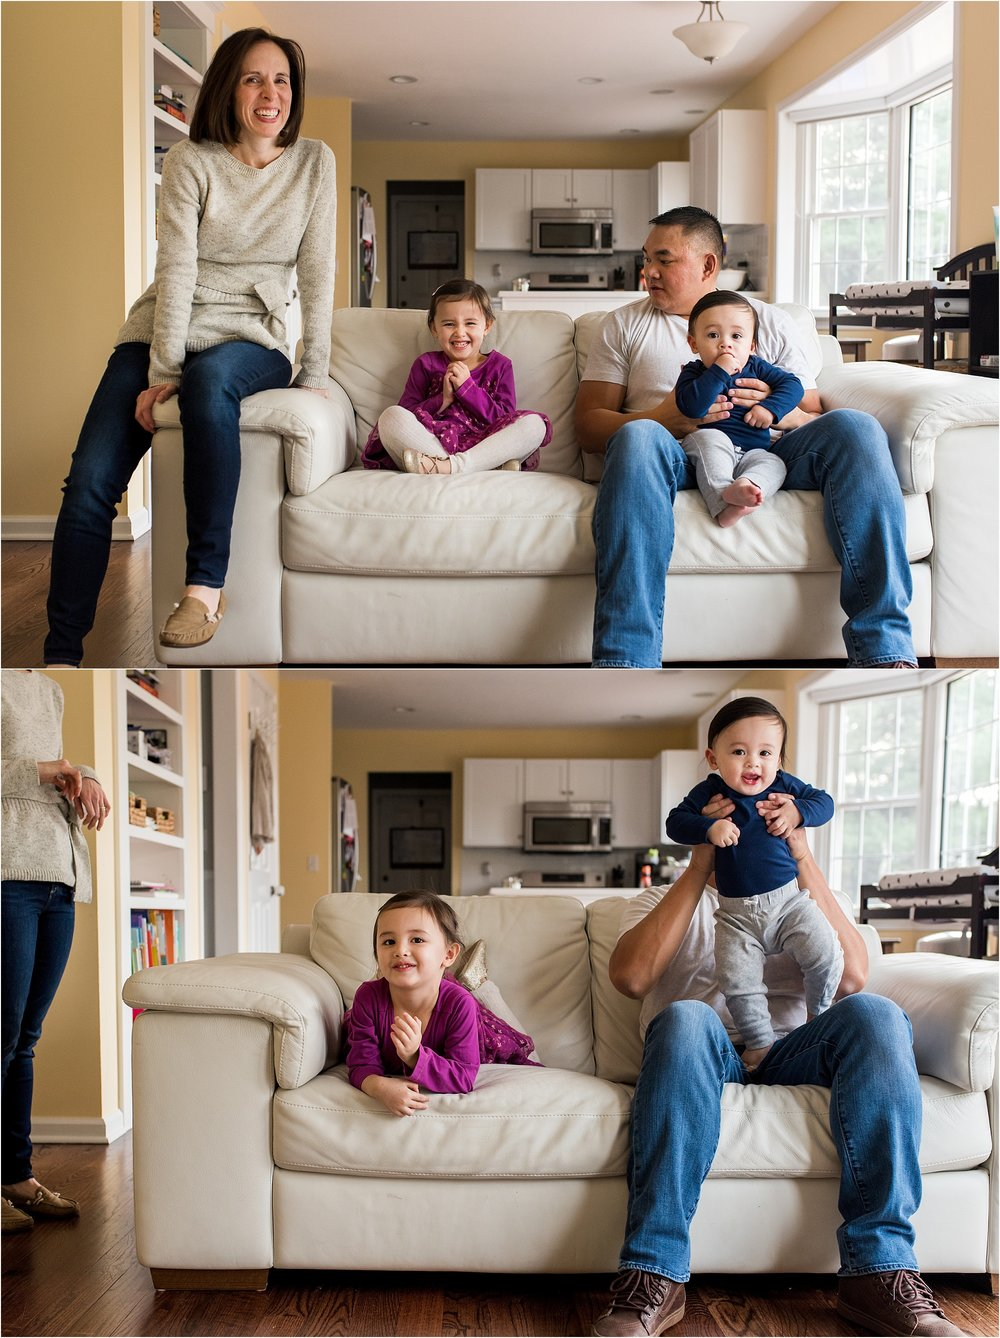 brother and sister in living room in home baby photographer middletown, ct